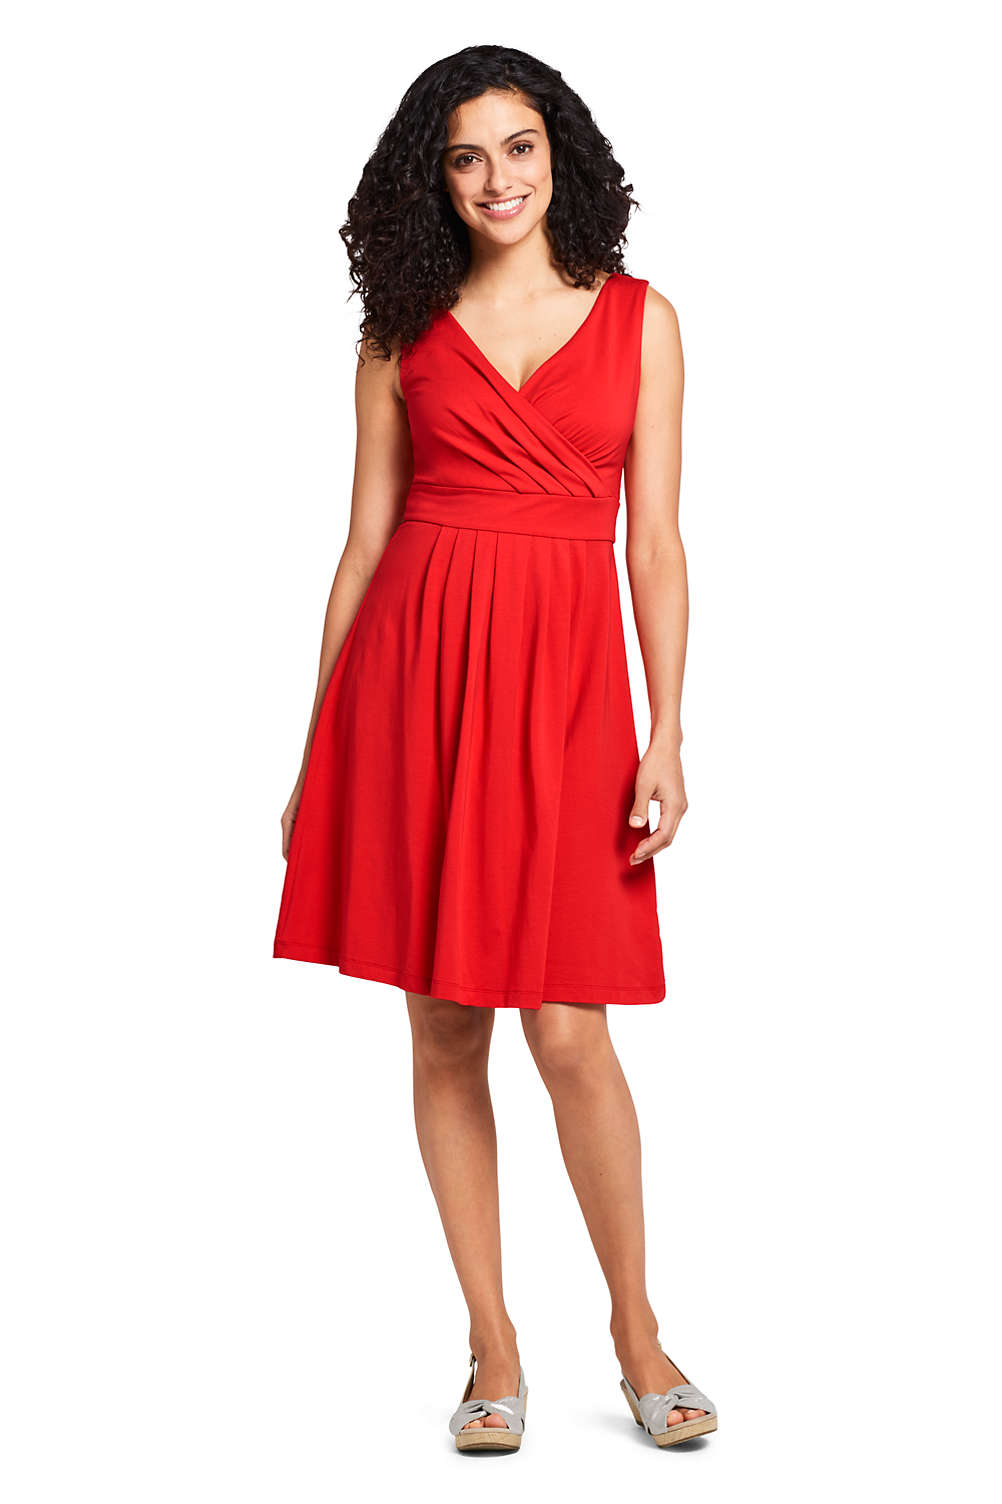 5f521ff566dc Women's Banded Waist Fit and Flare Dress Knee Length from Lands' End